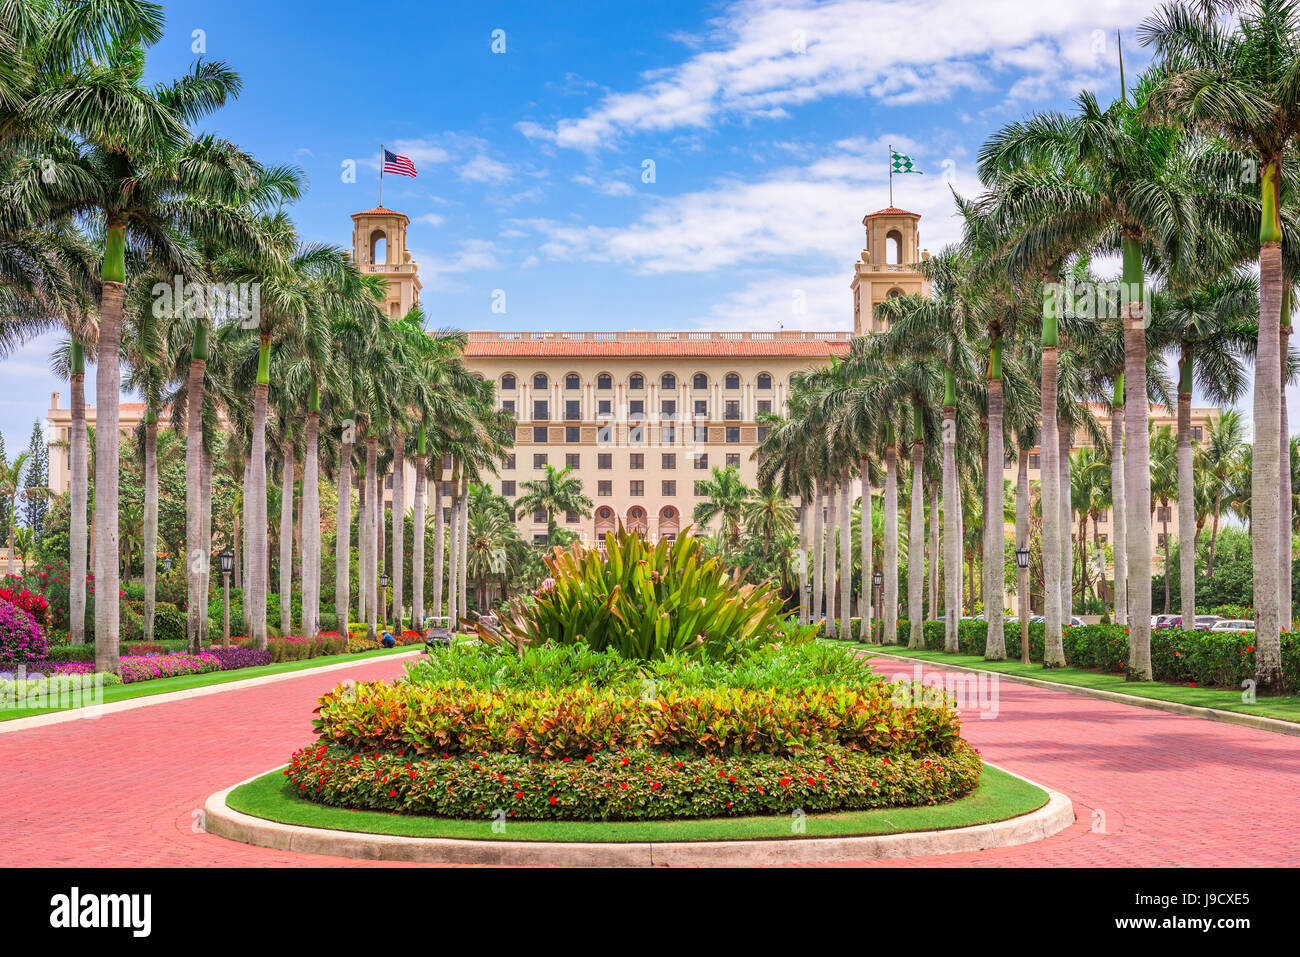 WEST PALM BEACH, FLORIDA - APRIL 4, 2016: The exterior of Breakers Hotel in West Palm Beach. The hotel dates from - Stock Image